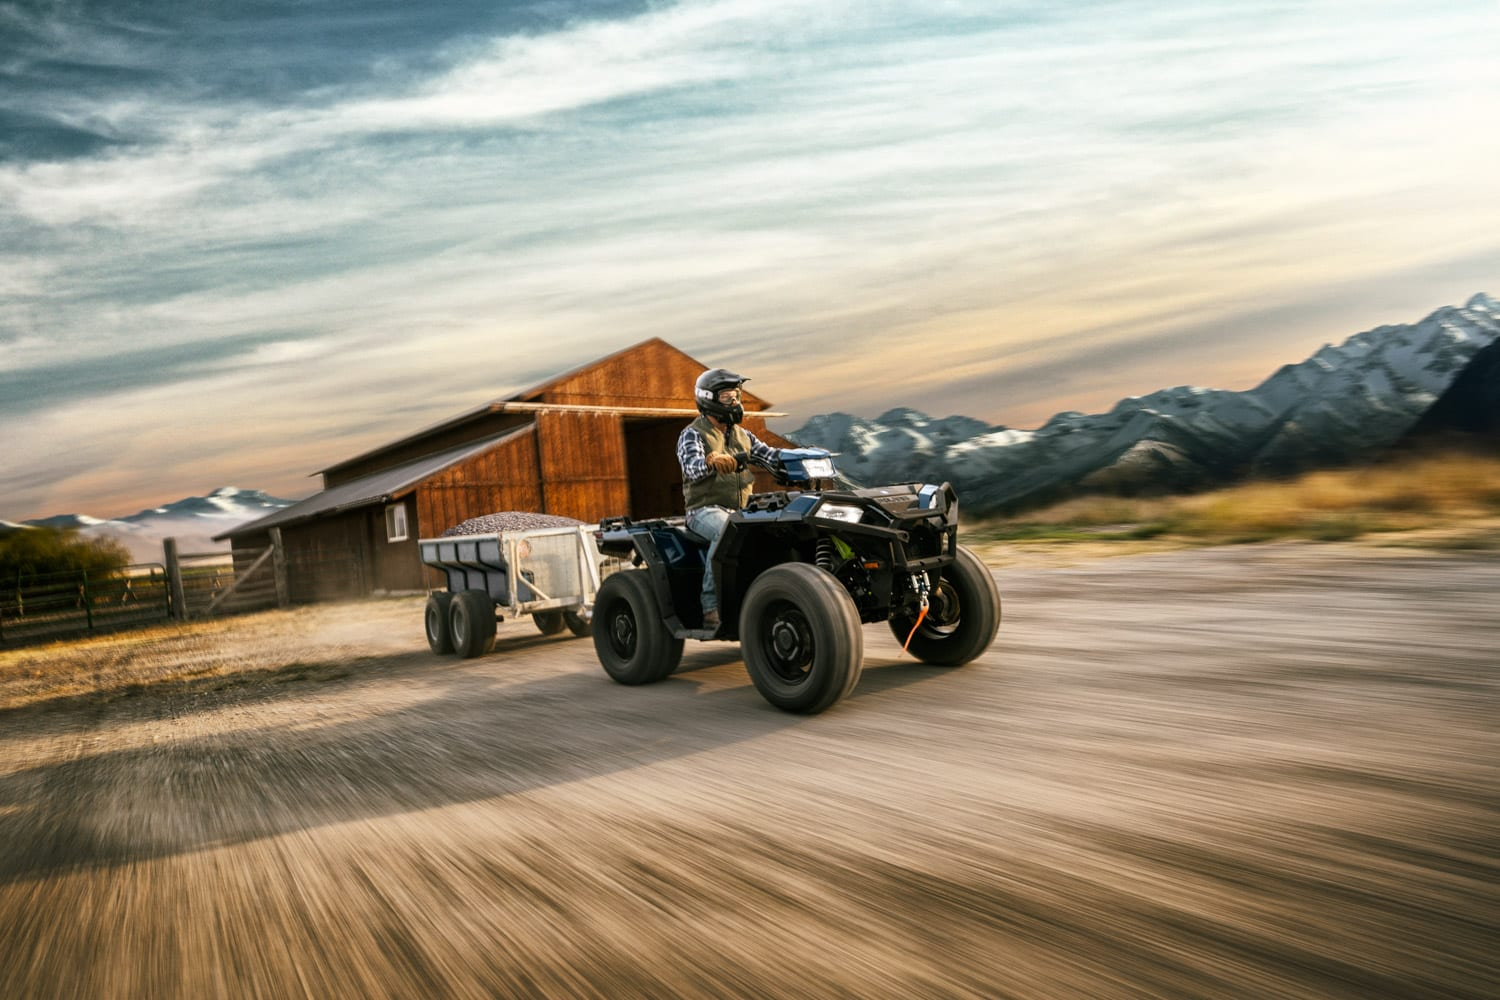 Towing with an ATV